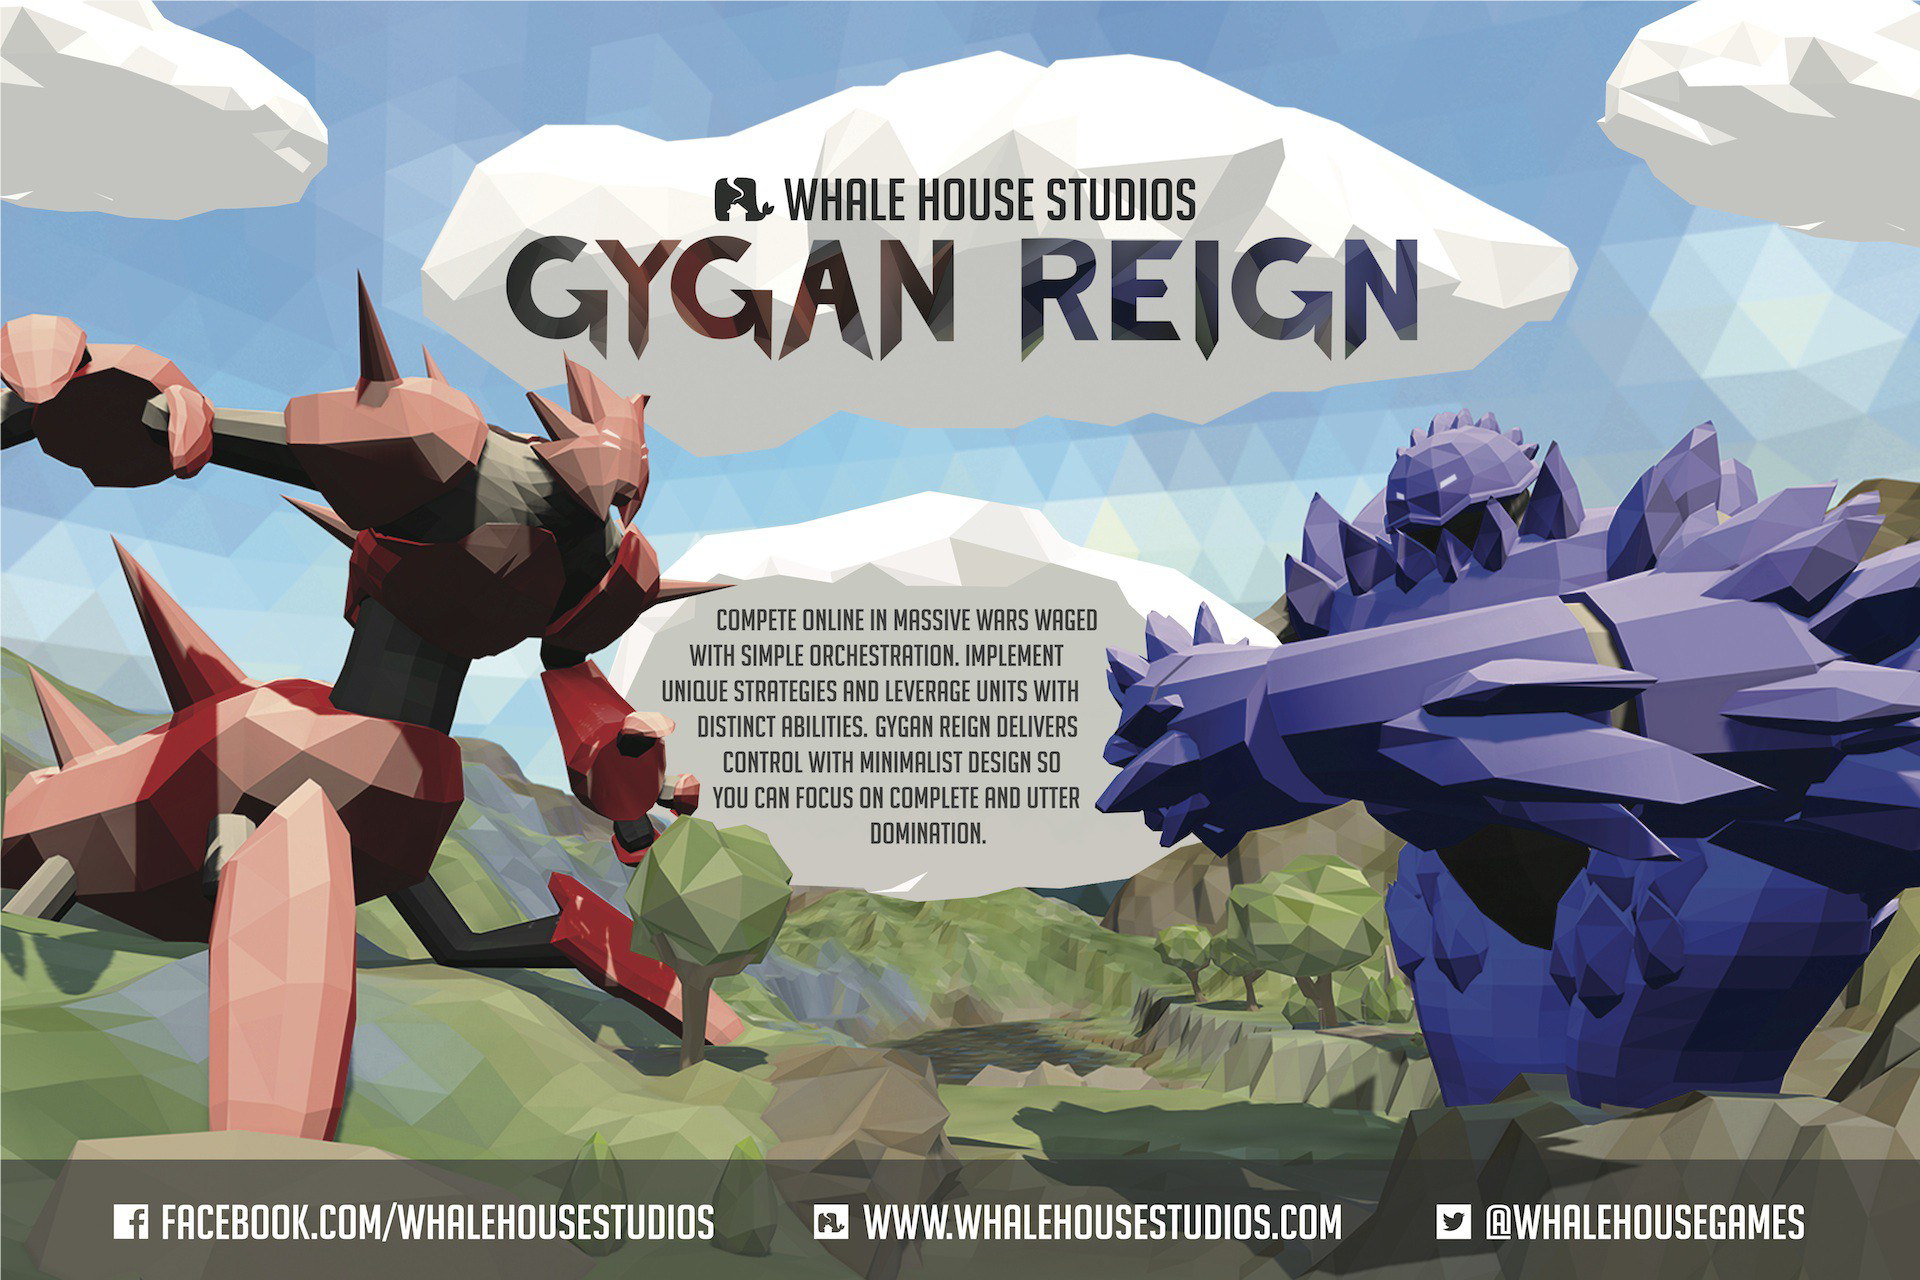 Promotional Poster for Gygan Reign.